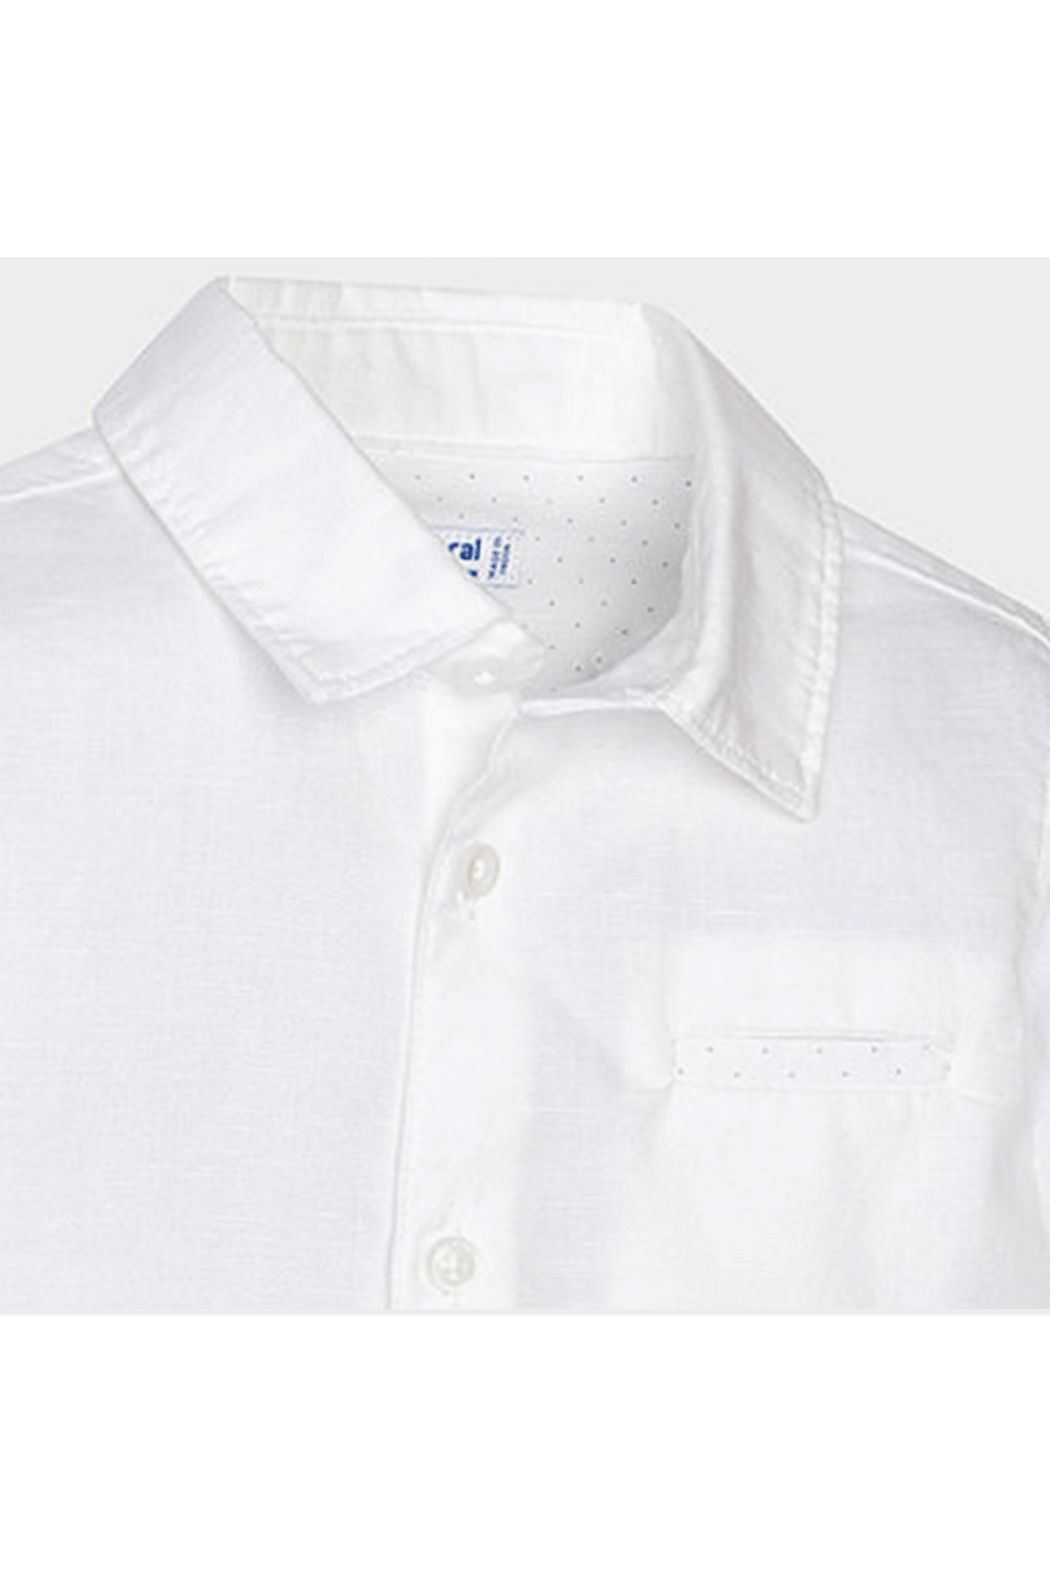 Mayoral White Linen Button Up - Front Full Image